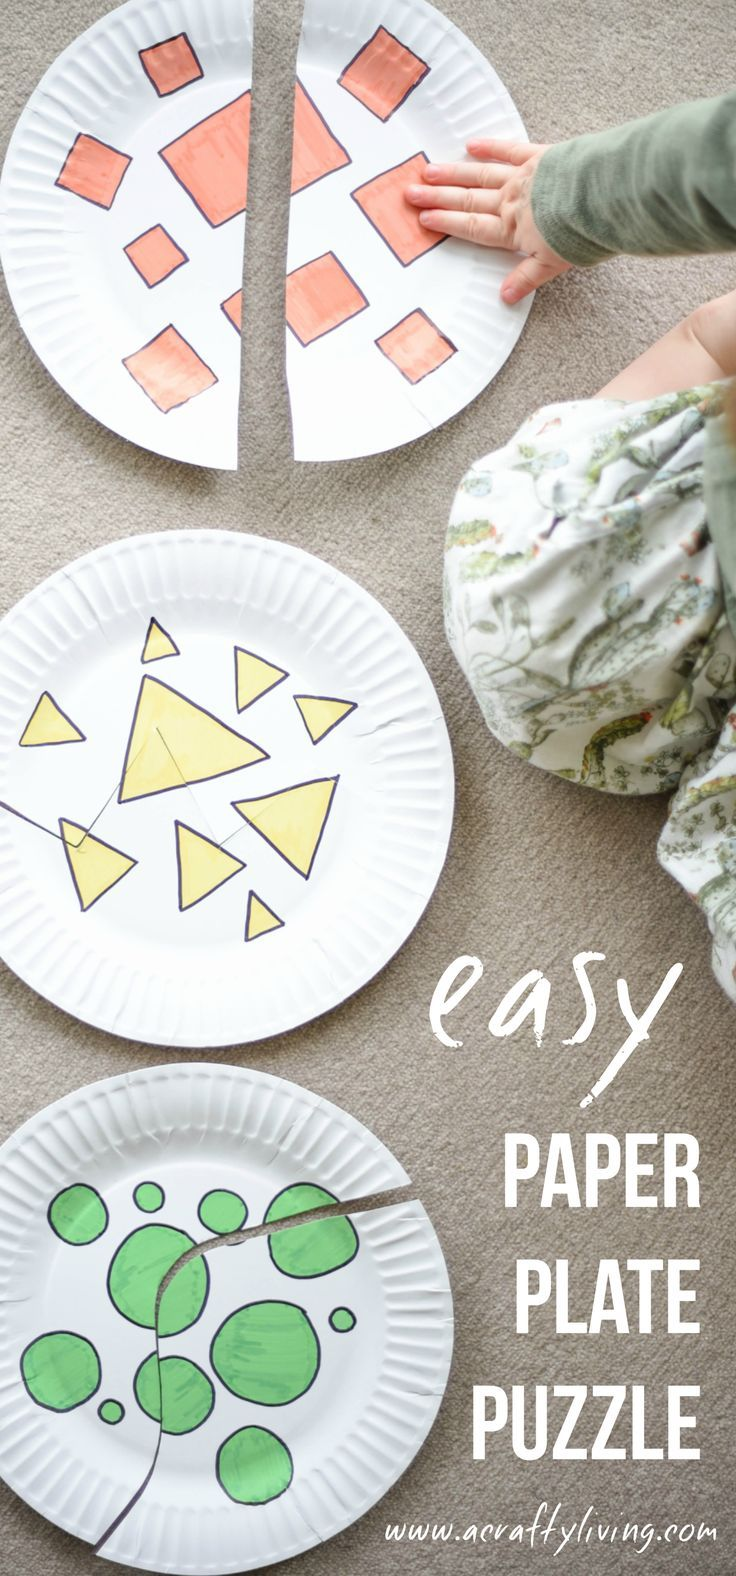 Activities for colors for toddlers - Easy Colour Shape Recognition Paper Plate Puzzle For Toddlers Preschoolers Www Acraftyliving